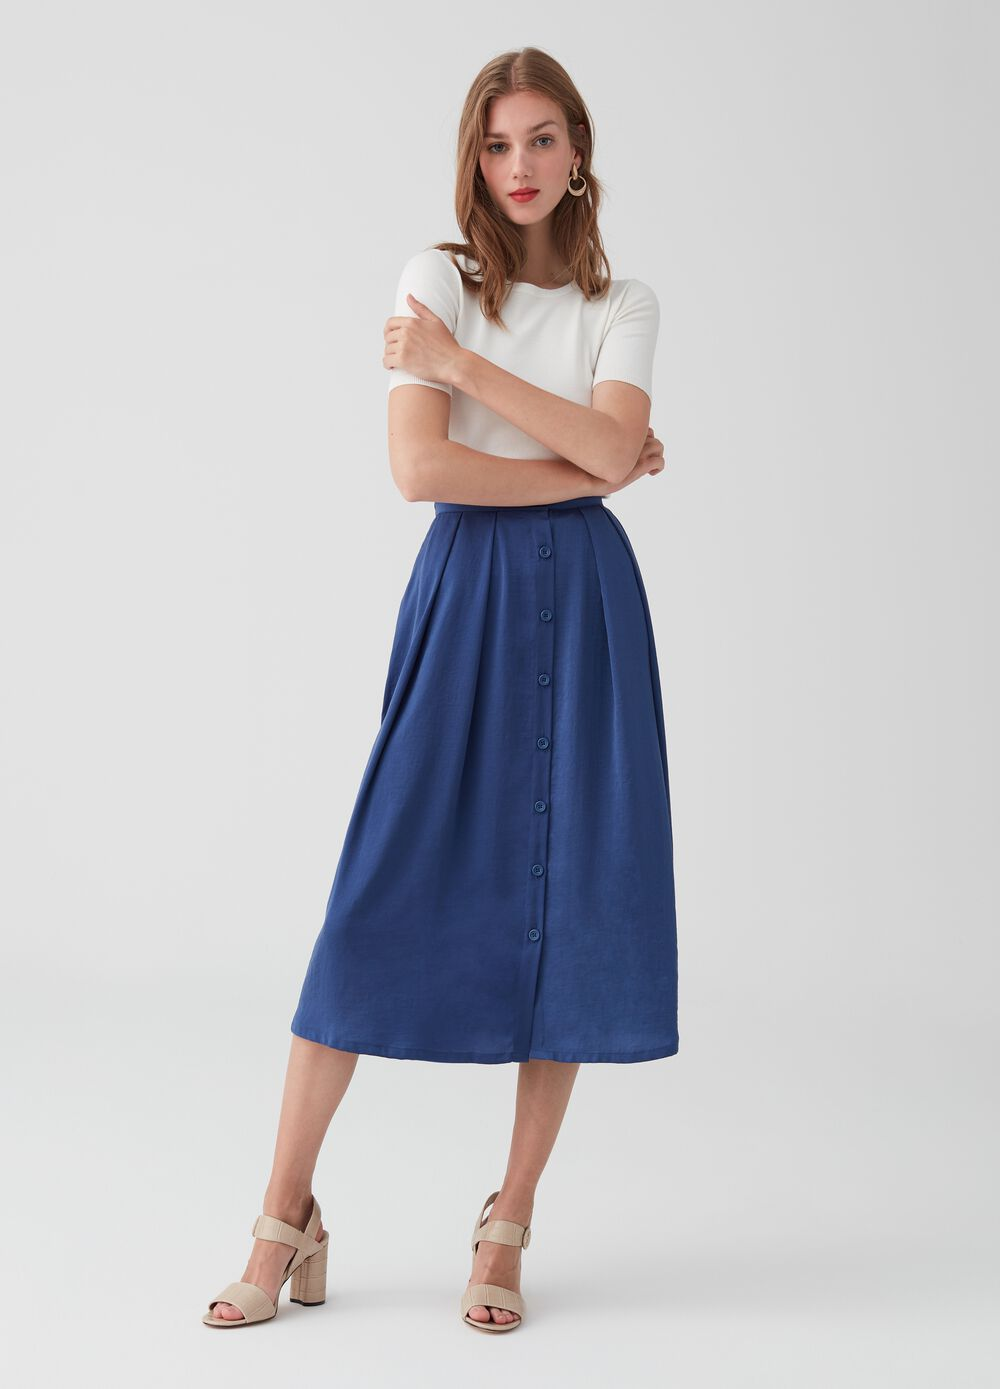 Skirt with pockets pleating and buttons